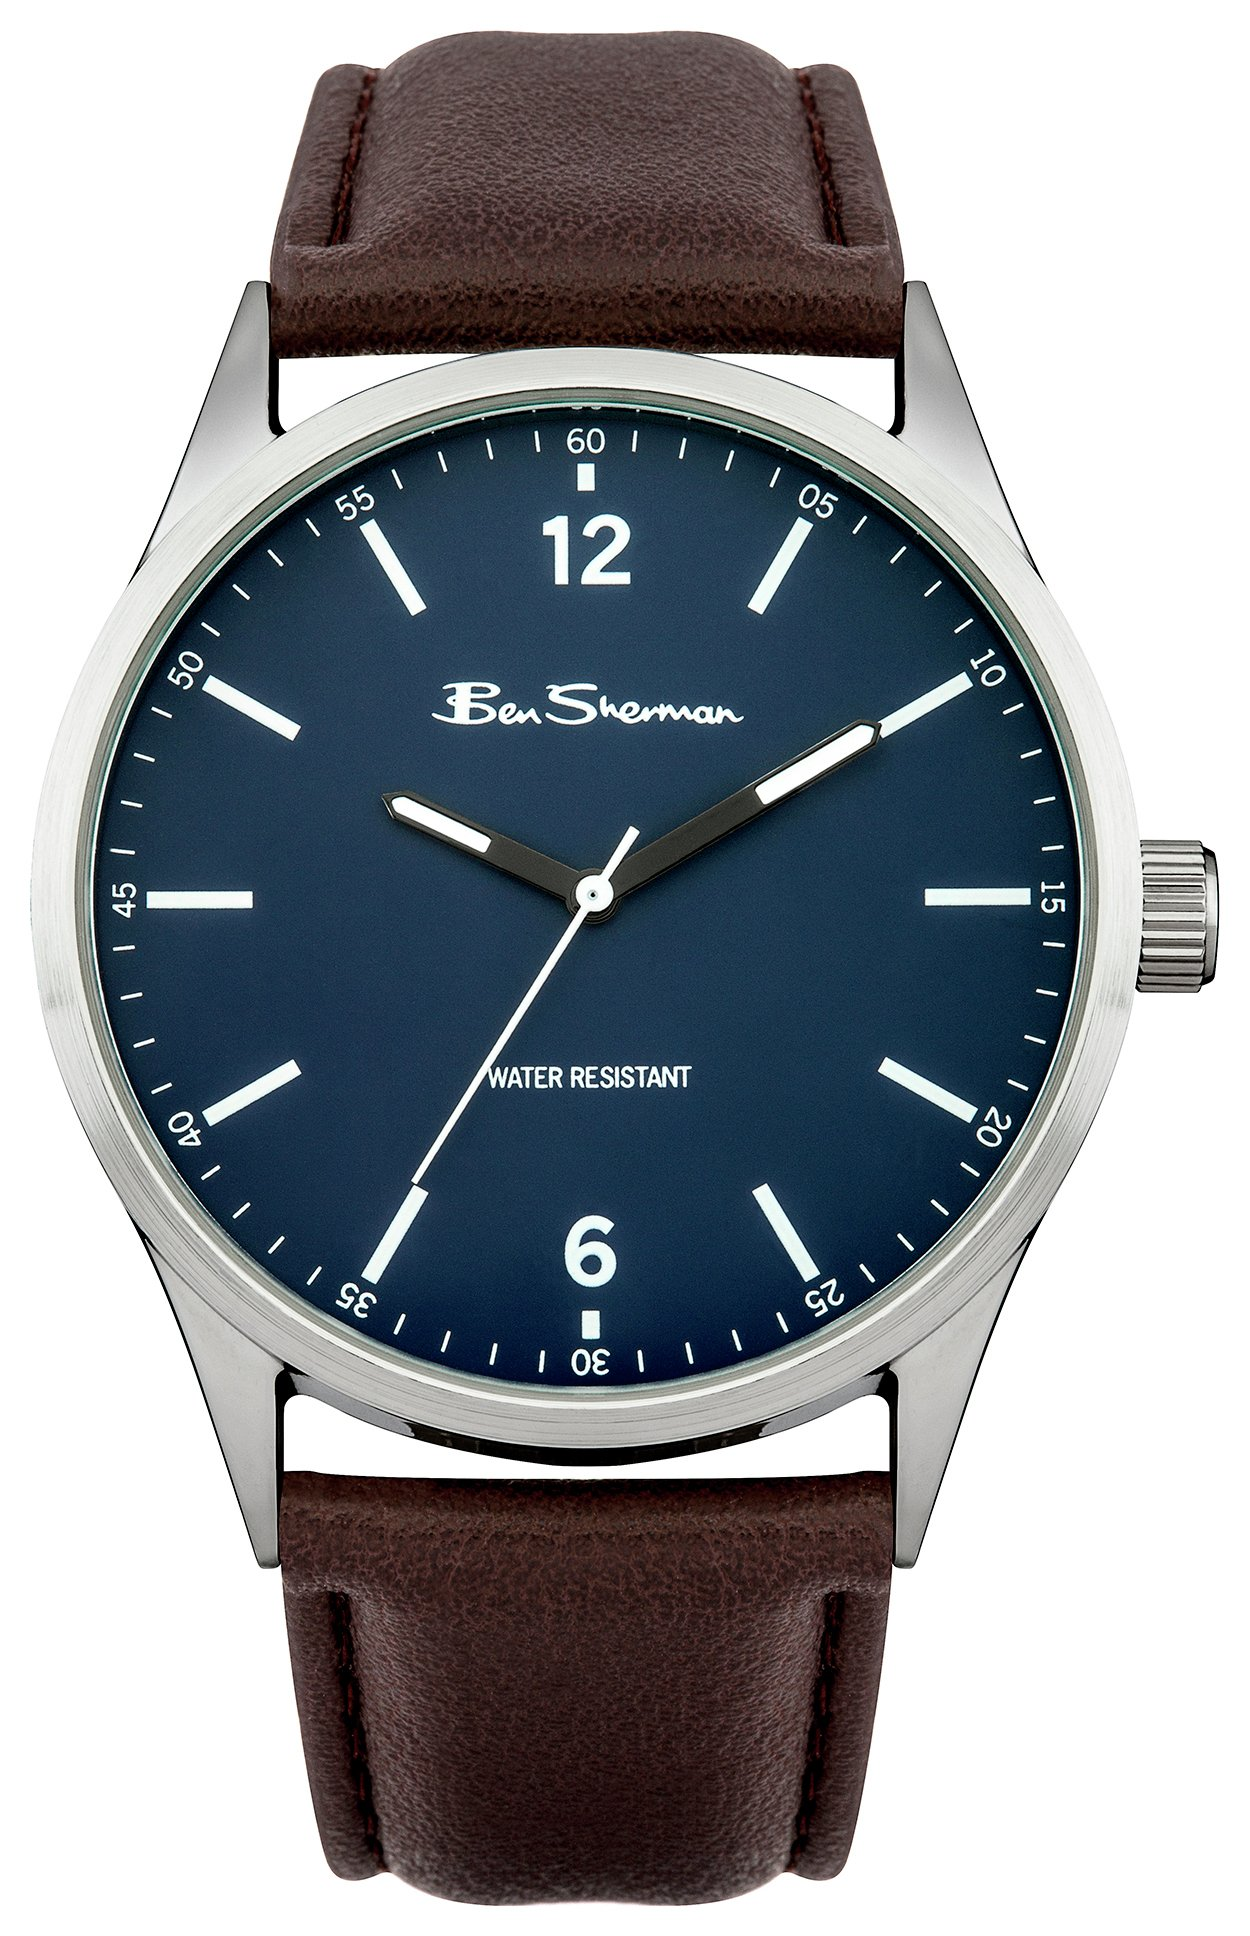 Image of Ben Sherman - Menss - Watch and Wallet Gift Set